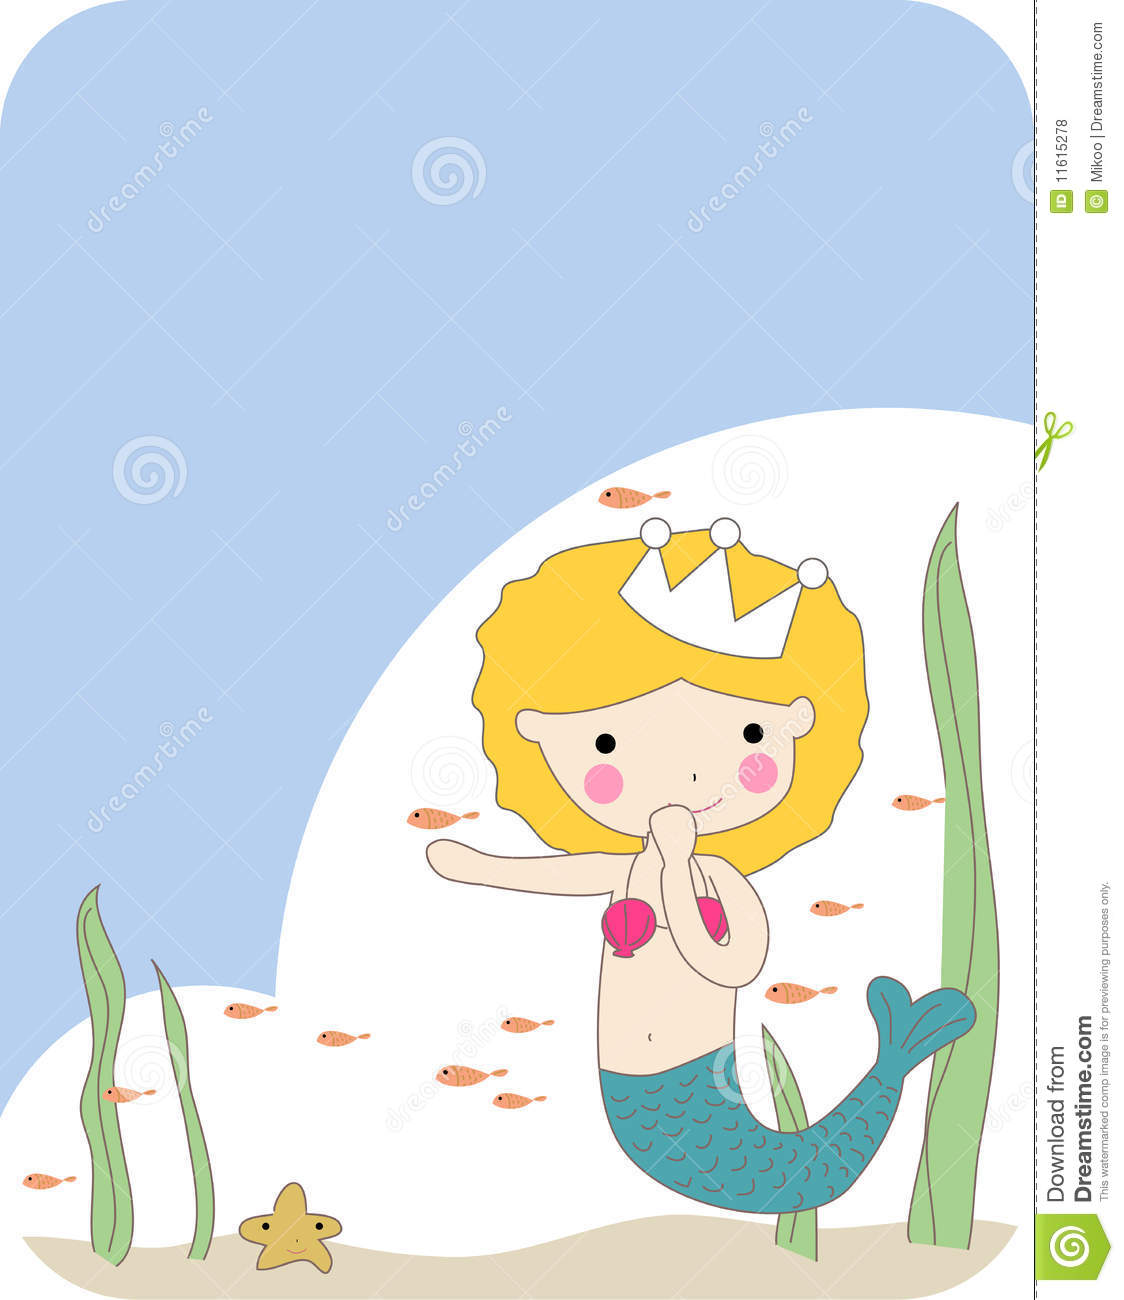 Little mermaid and fish royalty free stock photos image for Little mermaid fish